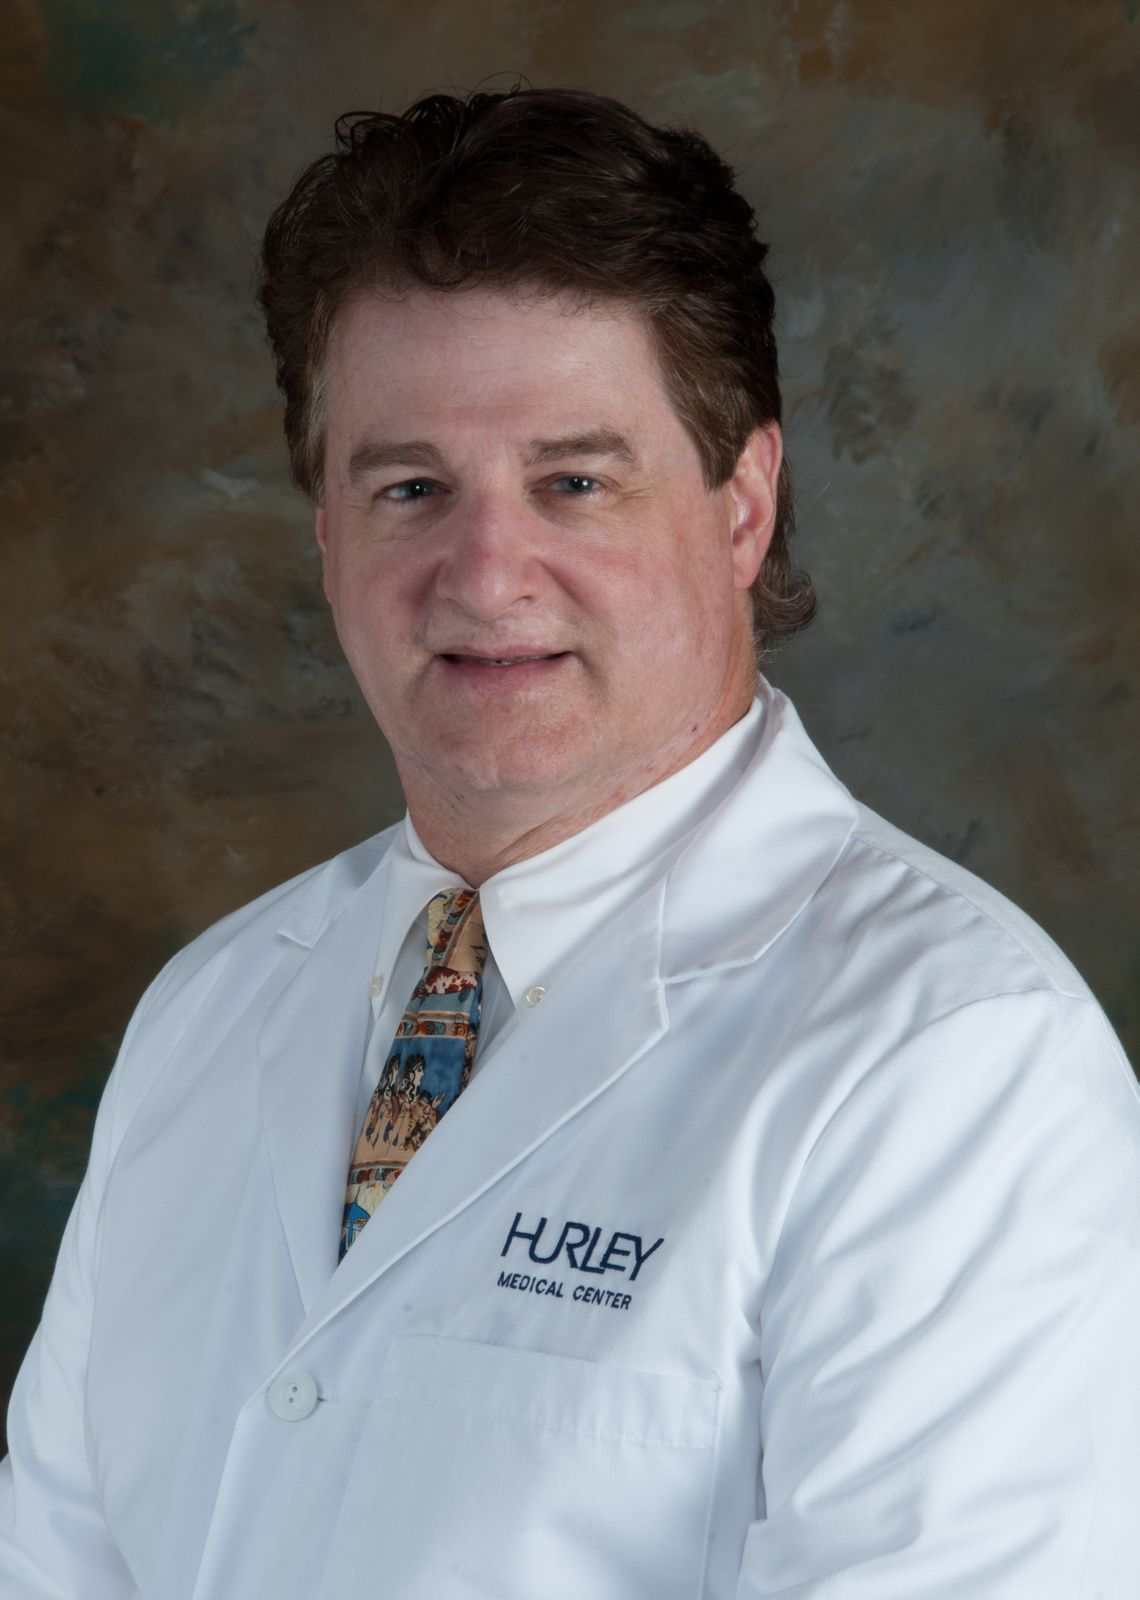 Robert M Cleary JR, MD, FACC